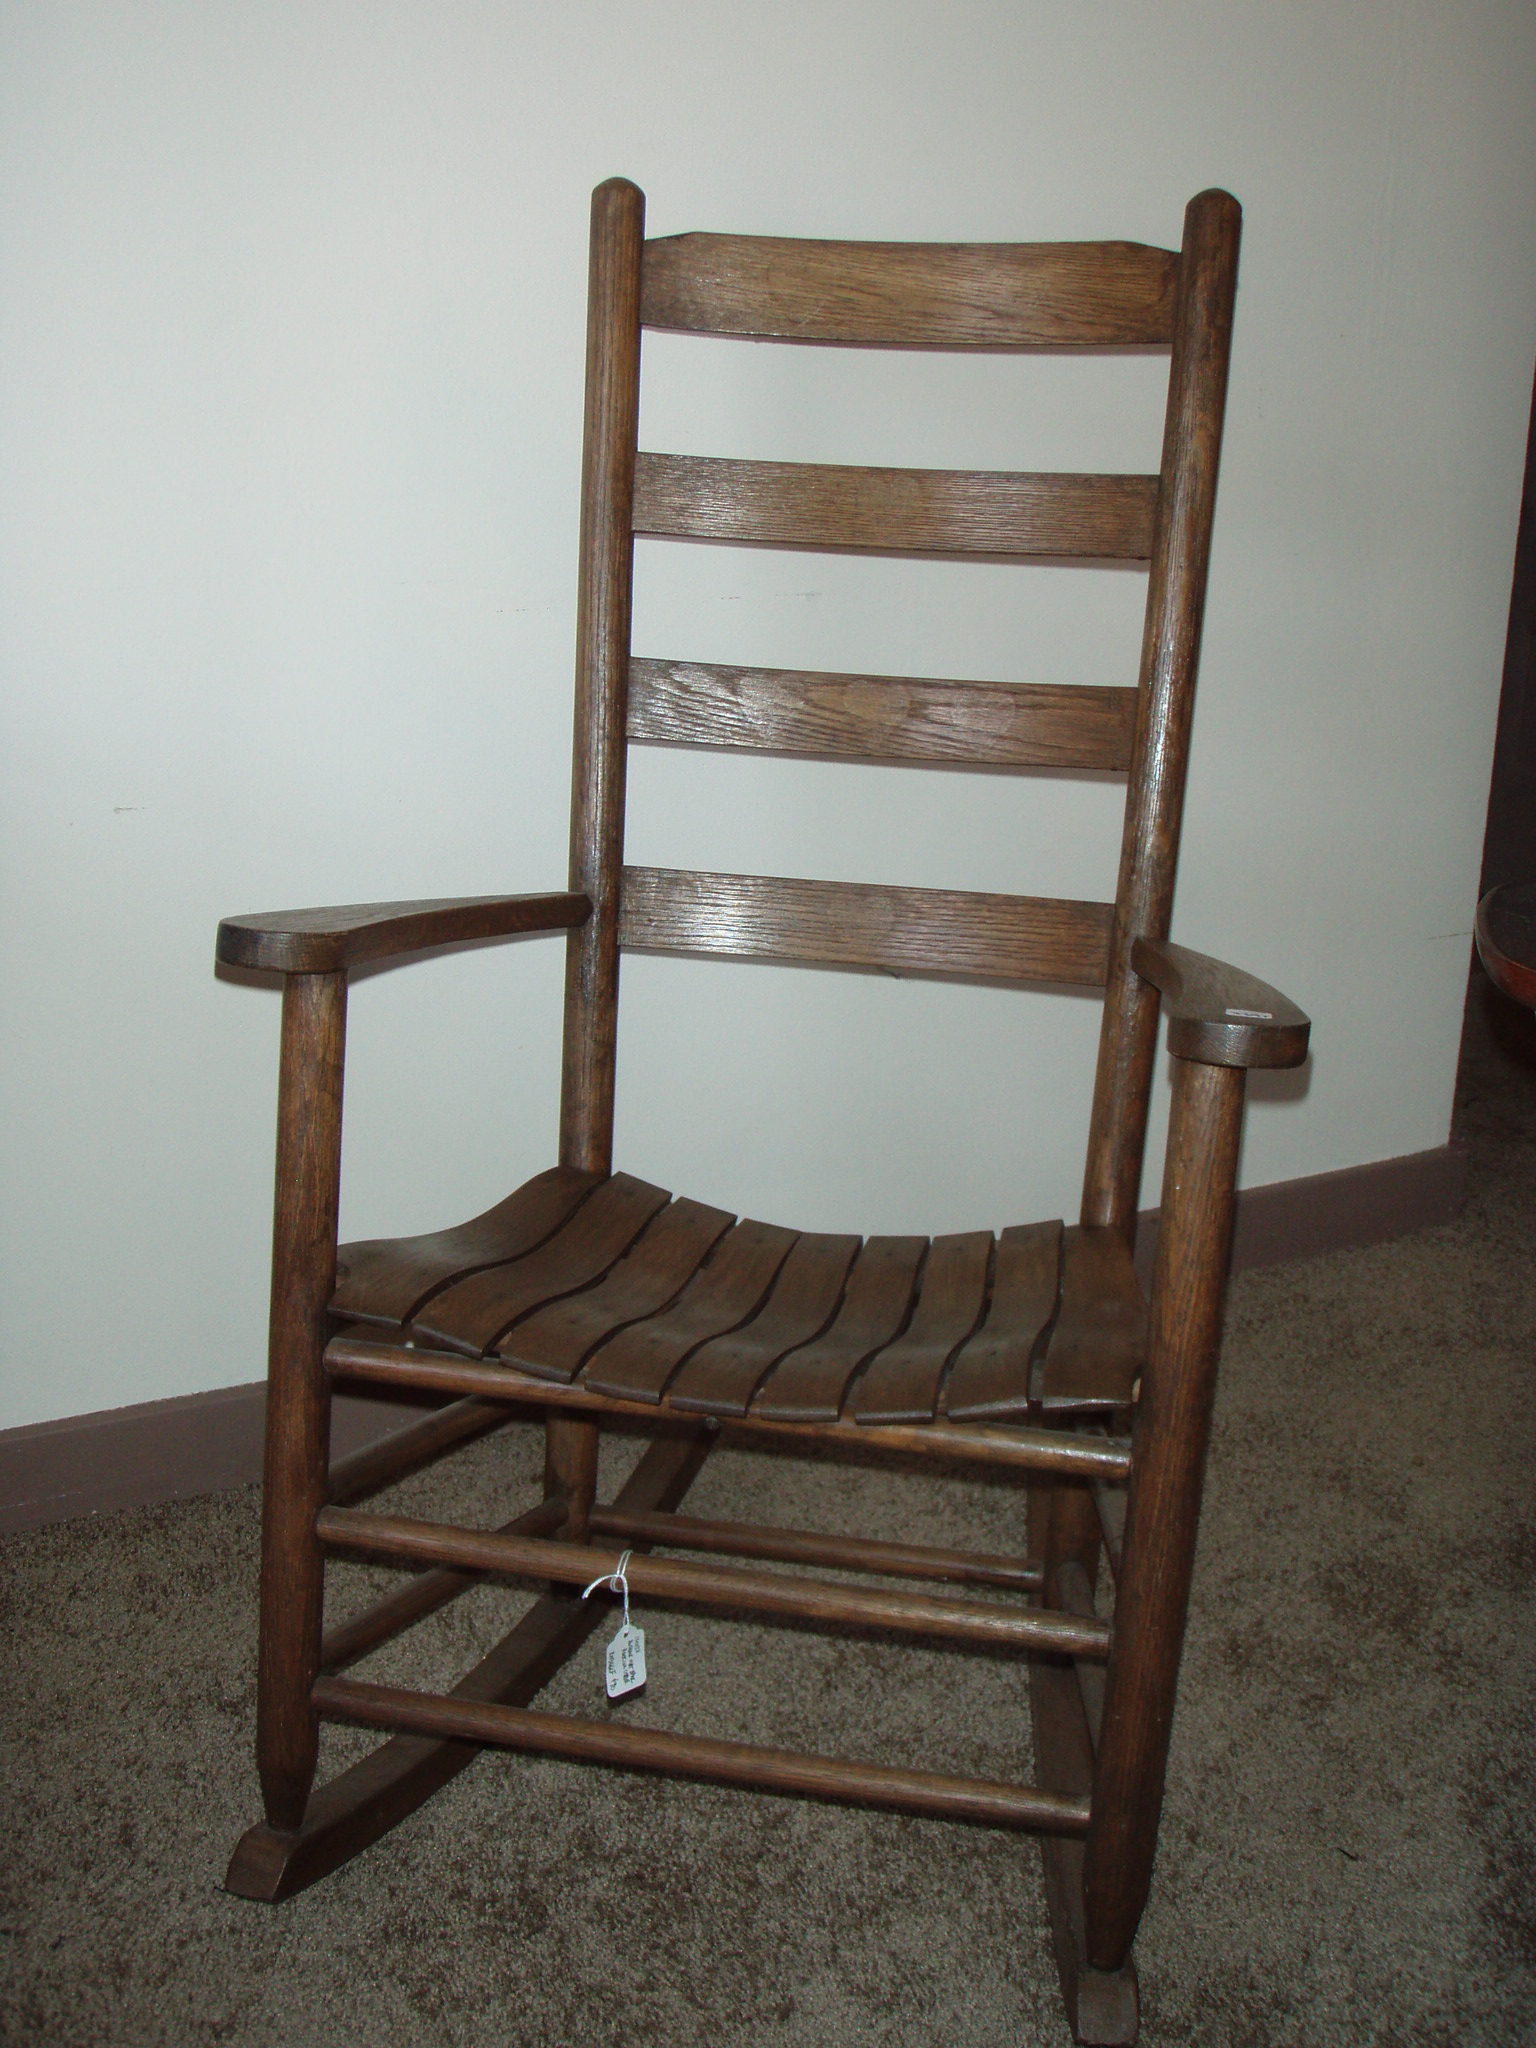 Antique Antique Slat Back Rocking Chair in addition Round Spinning Sofa Chair further Papasan Chair Design Classic Many Different Versions besides Bb Citterio Ac Lounge Chair in addition Xs1555websgl 9 Piece Rattan Wicker Cube Table Chair Footstool Garden Set Black. on rocking chair cushions